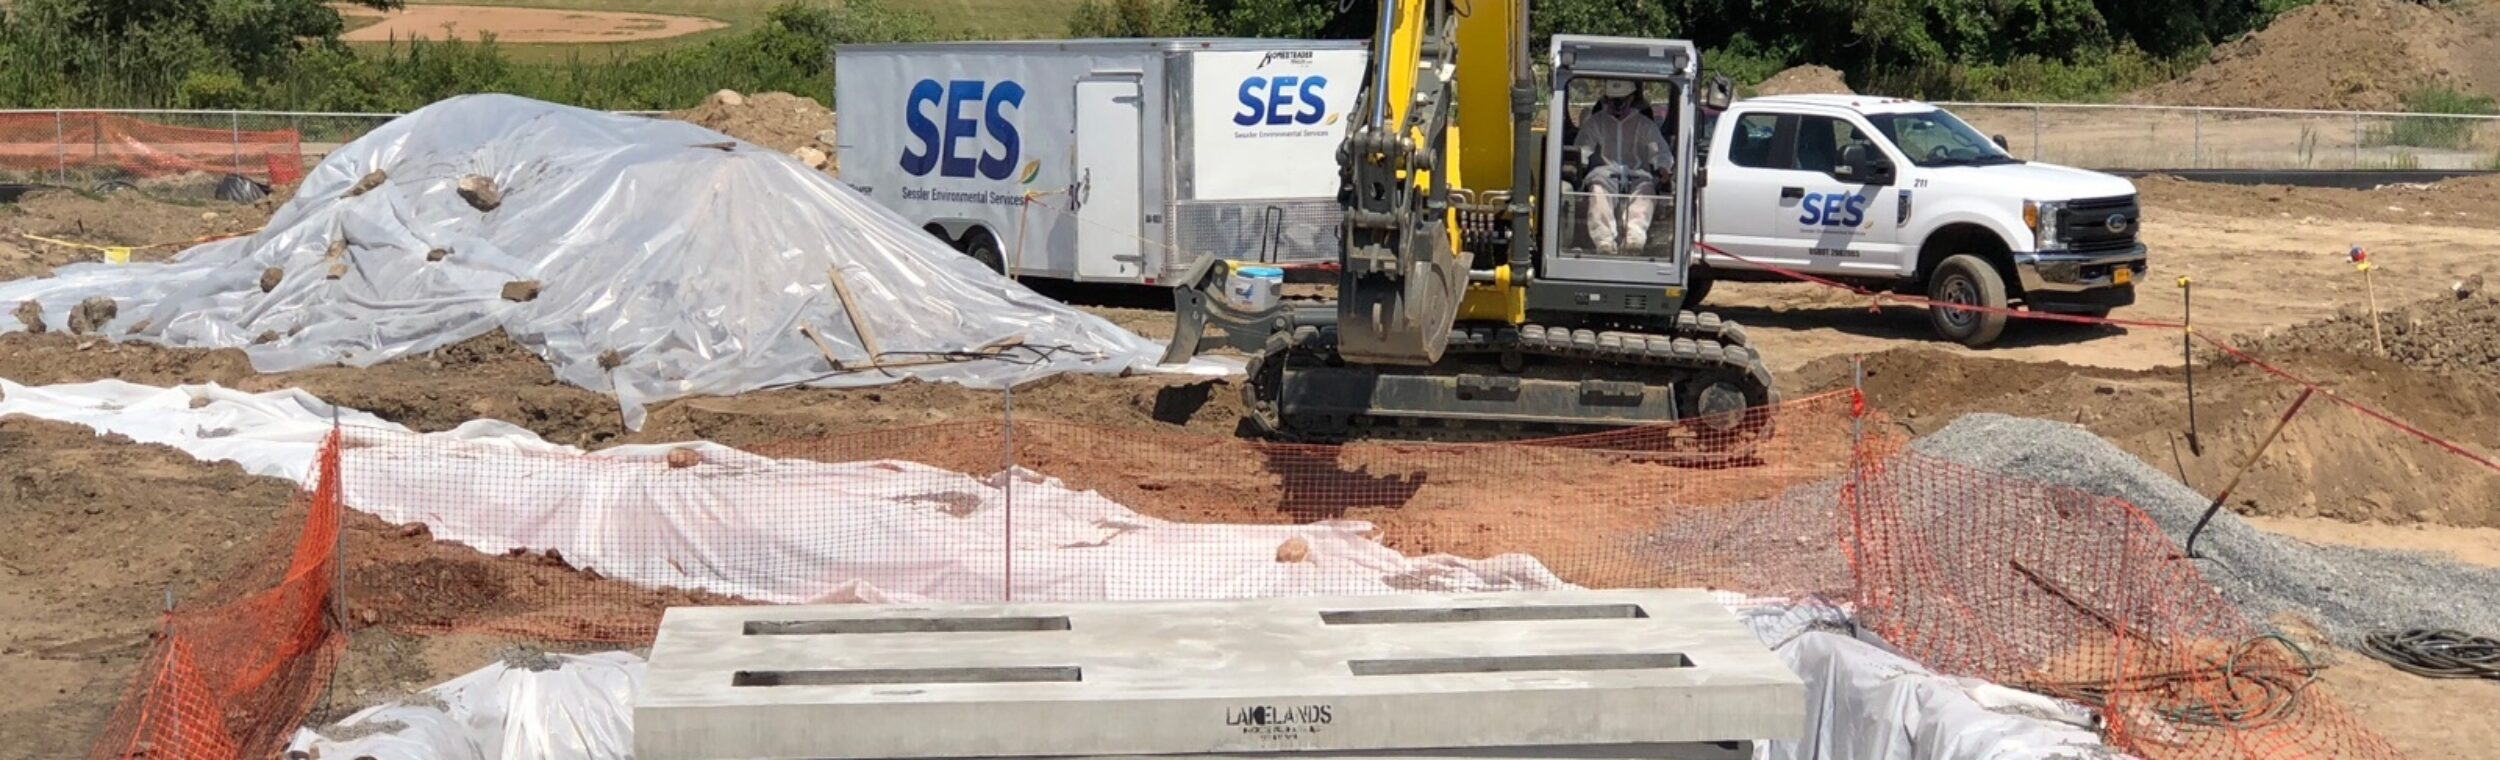 Ses In Excavator Acm Soil Trench